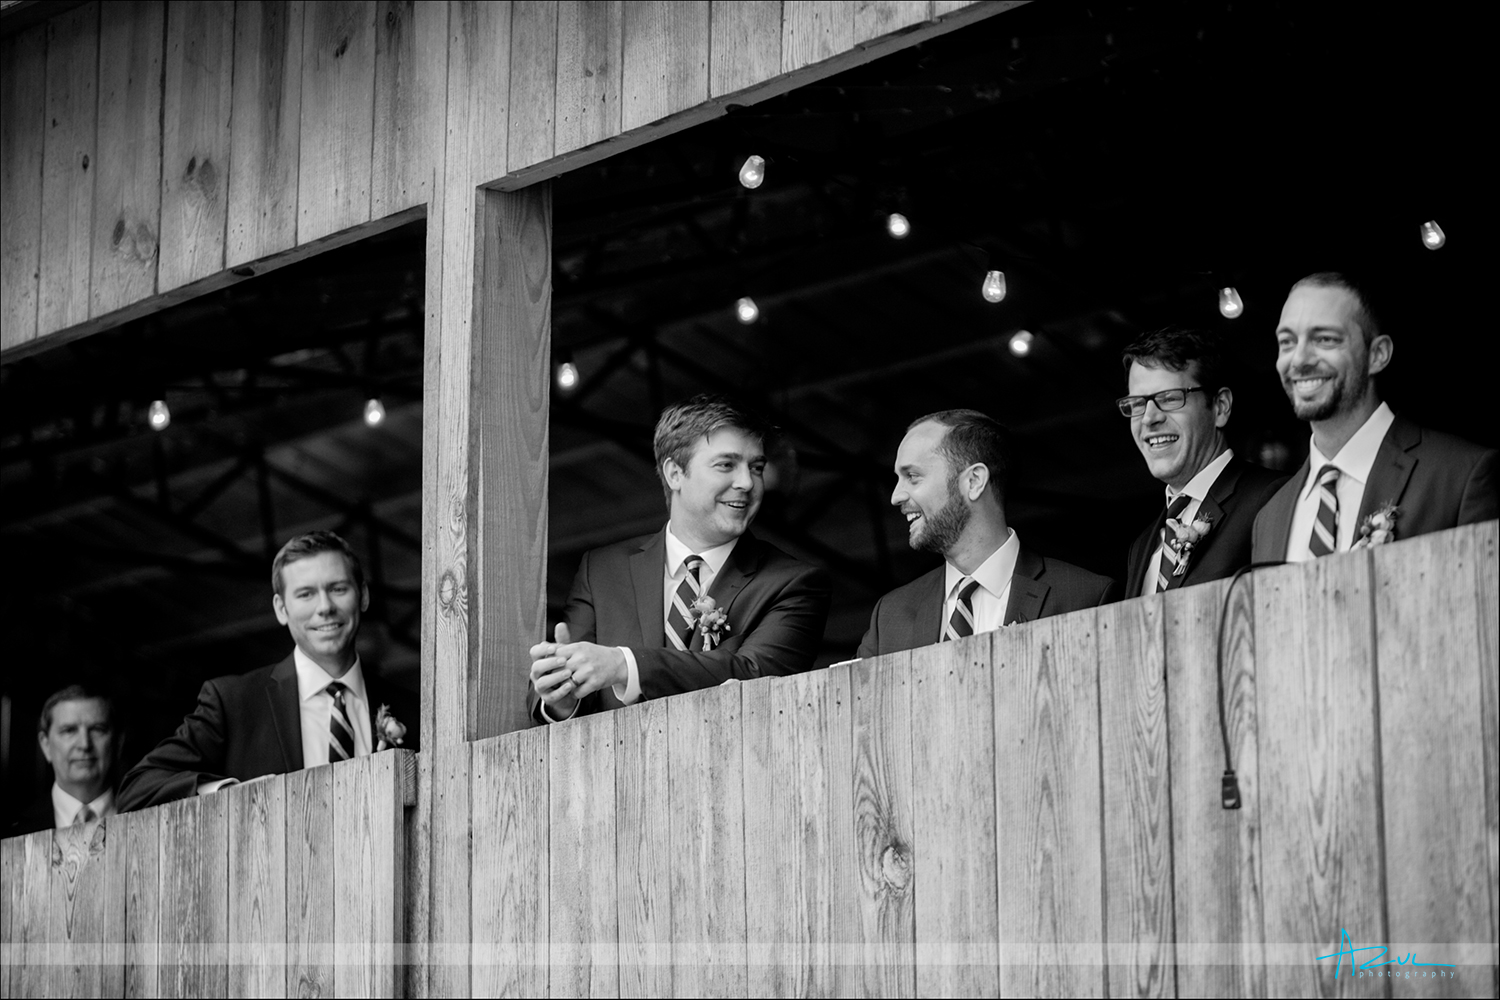 Barn style wedding photography of groom and his men